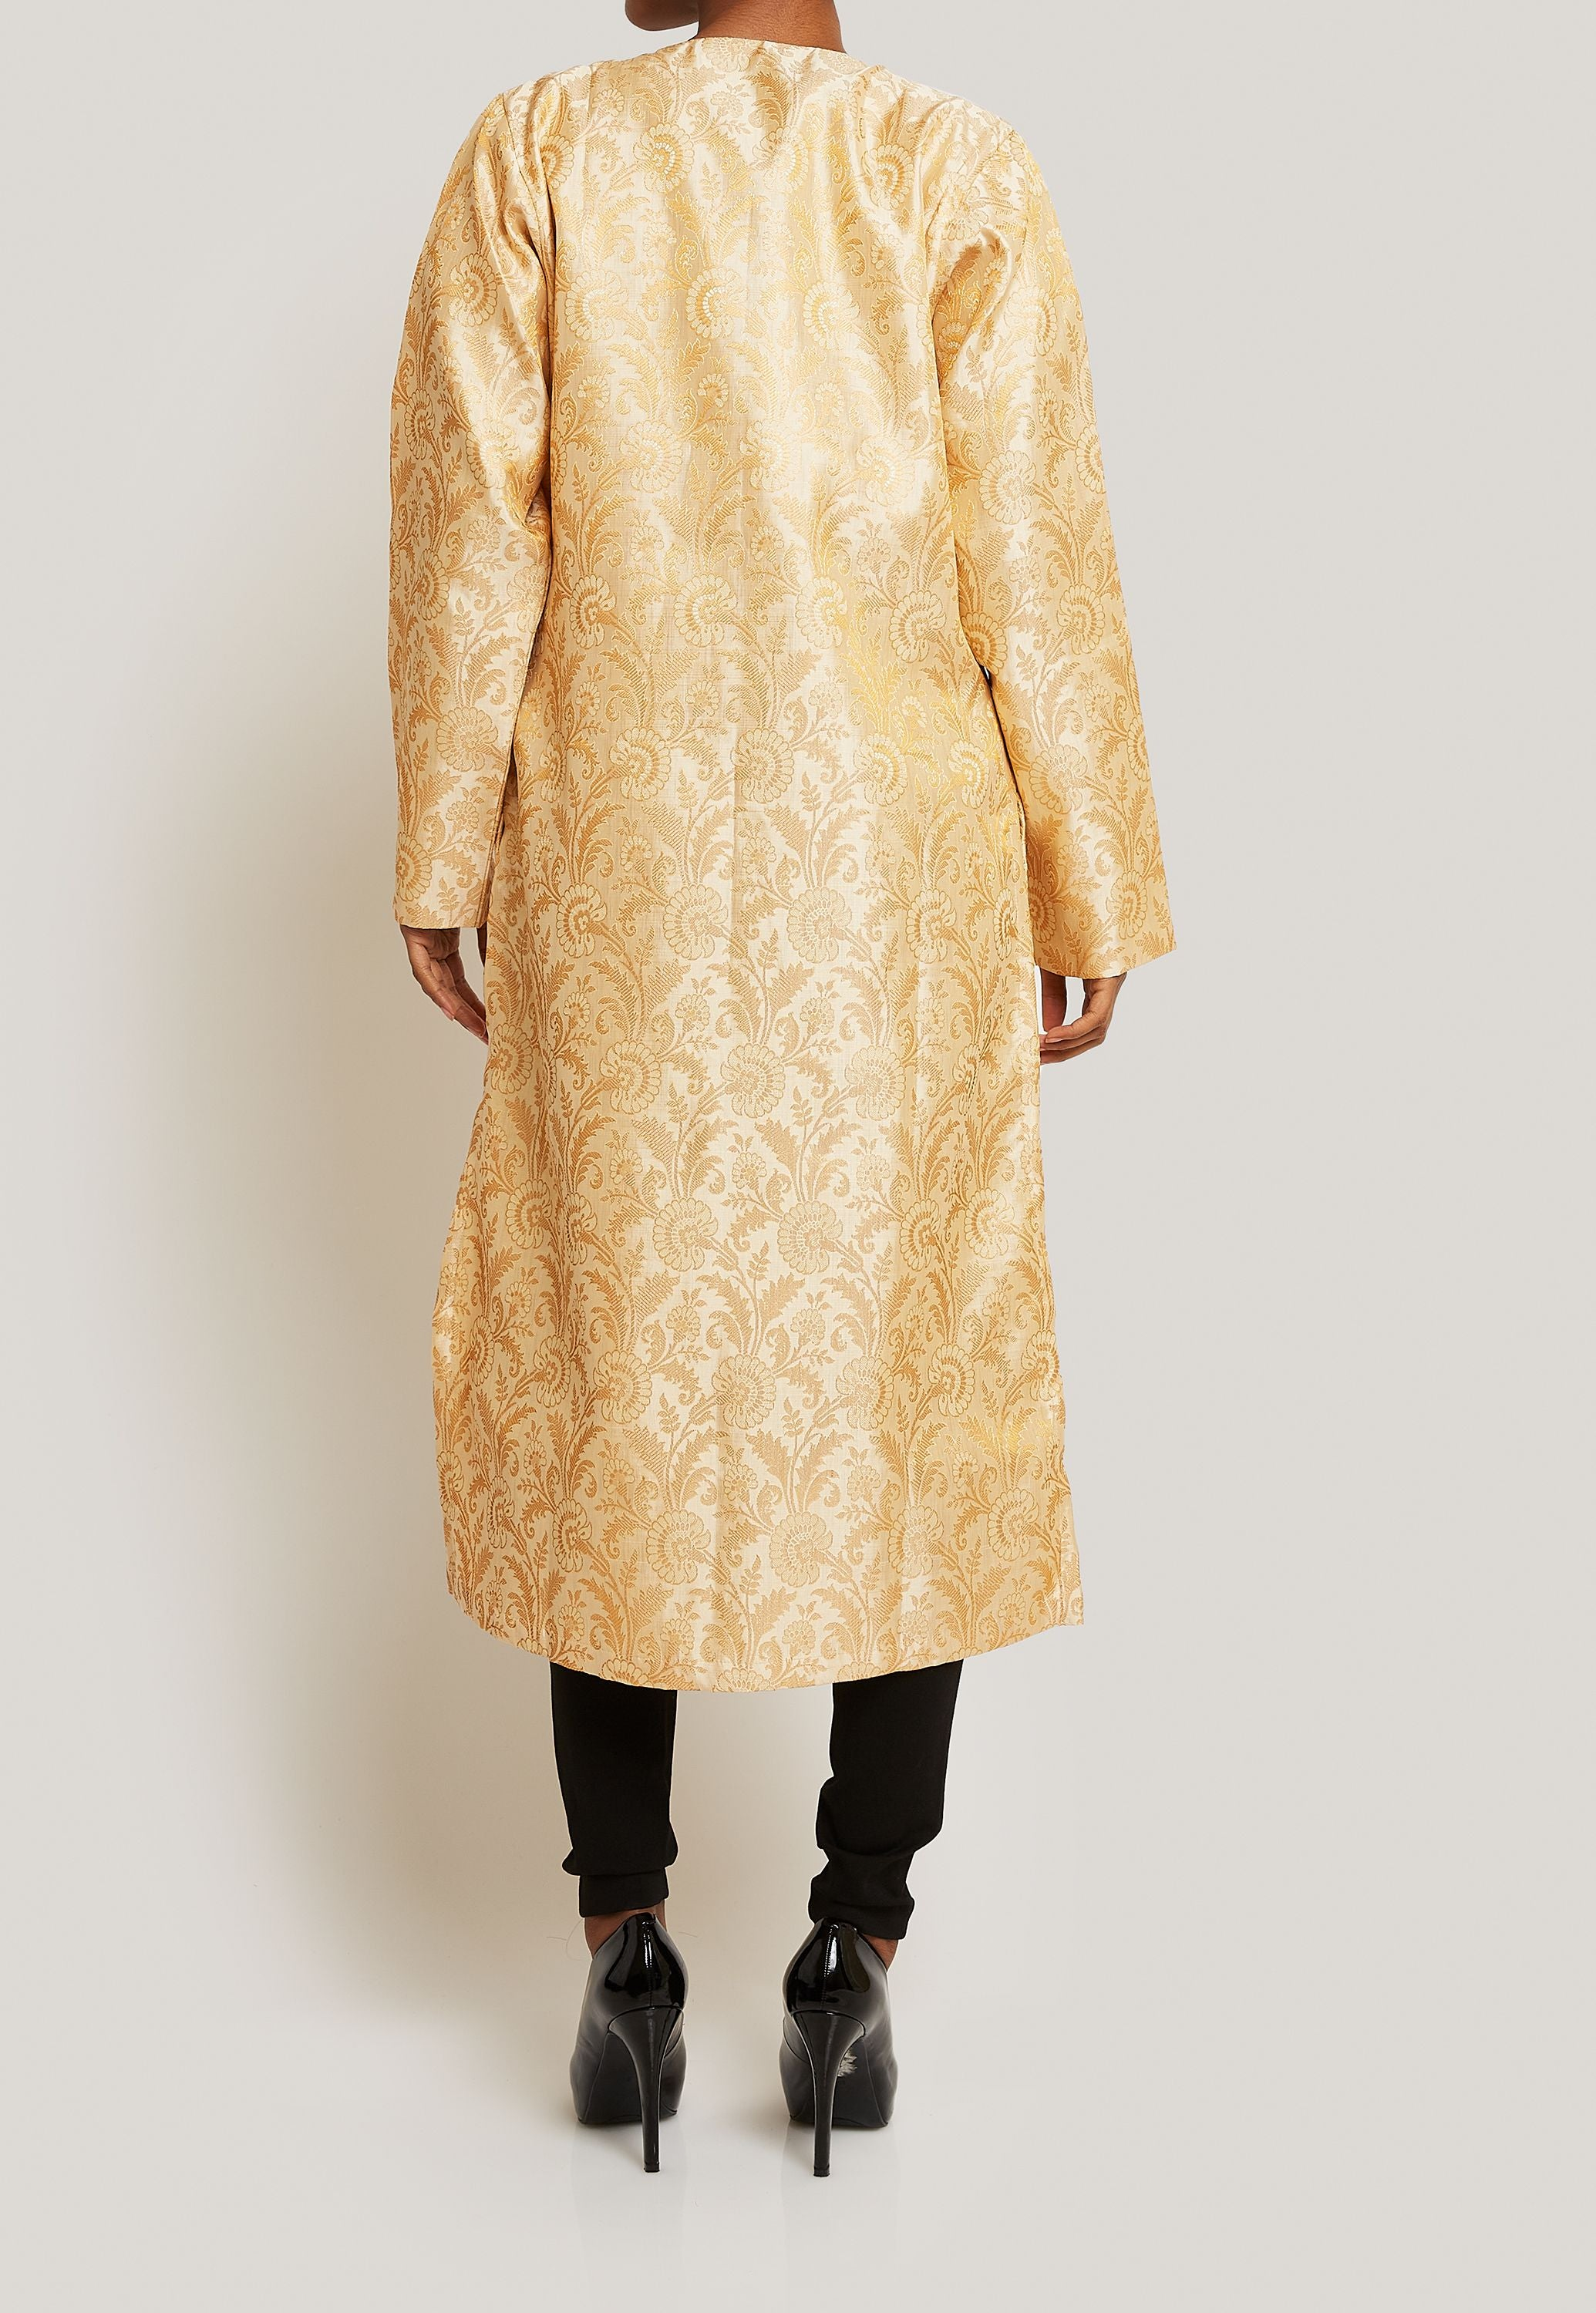 GOLD VERSATILE AND CHIC BROCADE JACKET